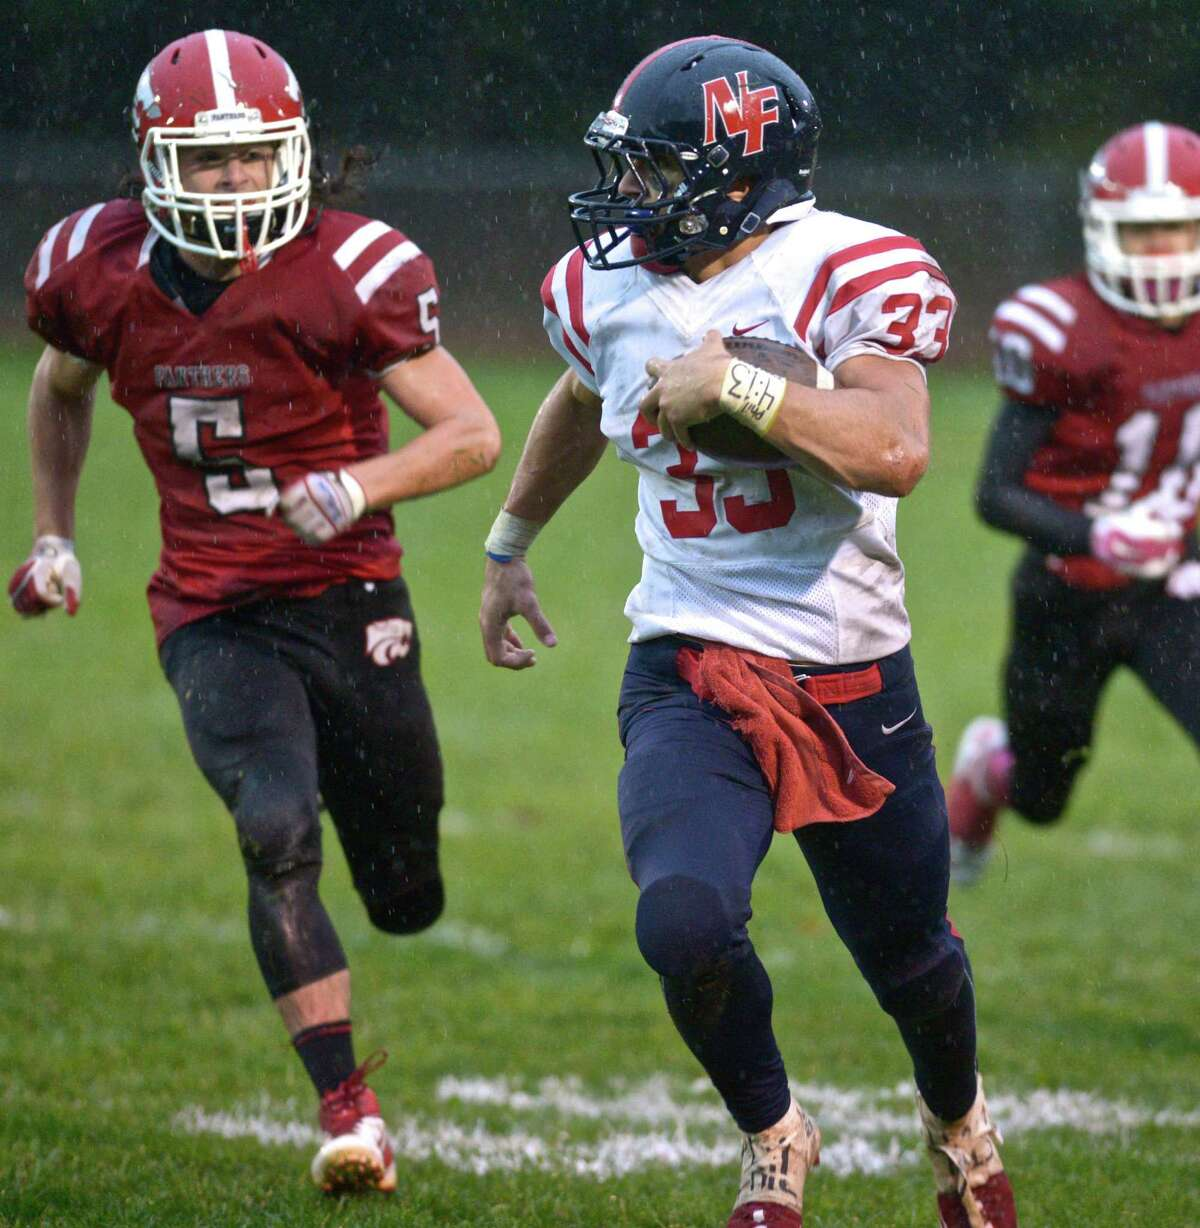 The skinny: The Rebels are hanging tight in the SWC race.